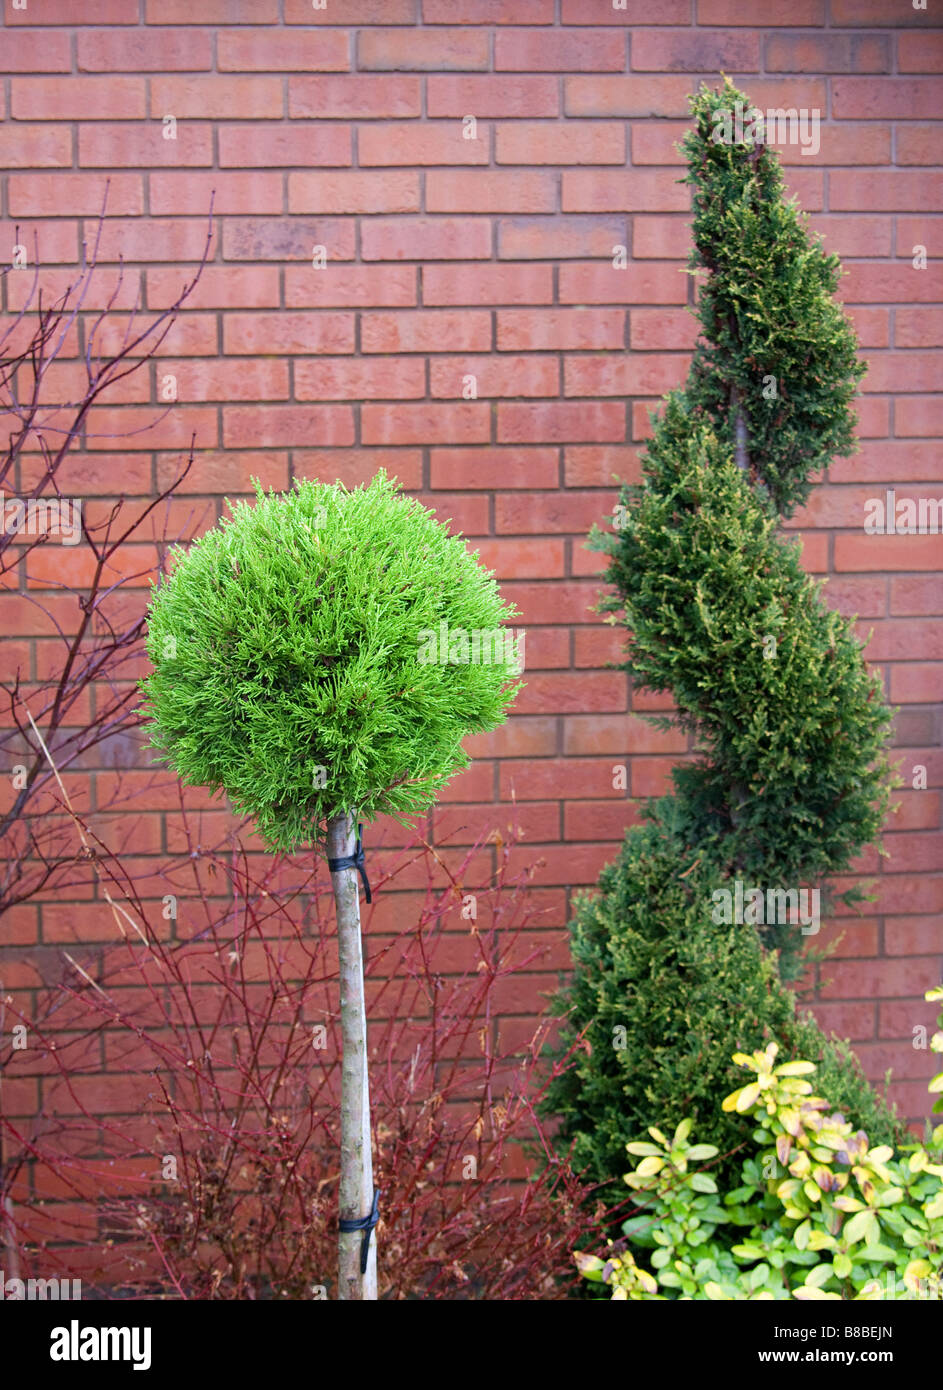 Topiary ornamental tree trained into a spiral shape and a Goldcrest ball - Stock Image